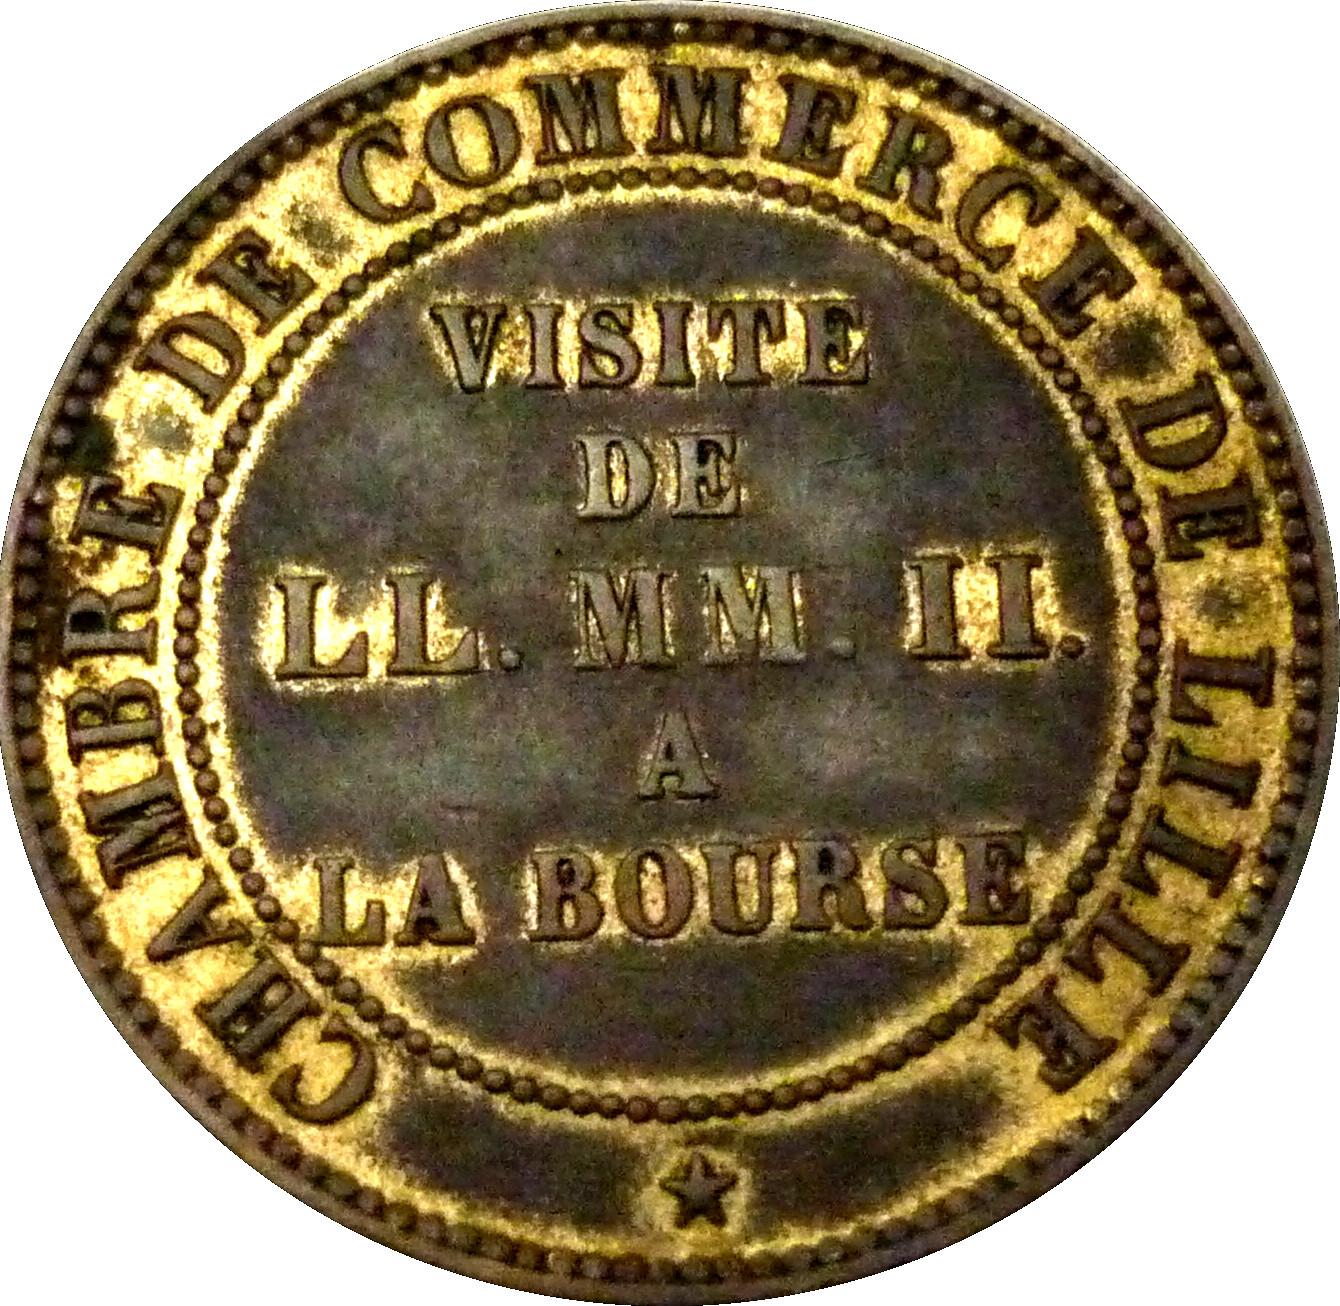 Napol on iii chambre de commerce lille tokens numista for Chambre de commerce